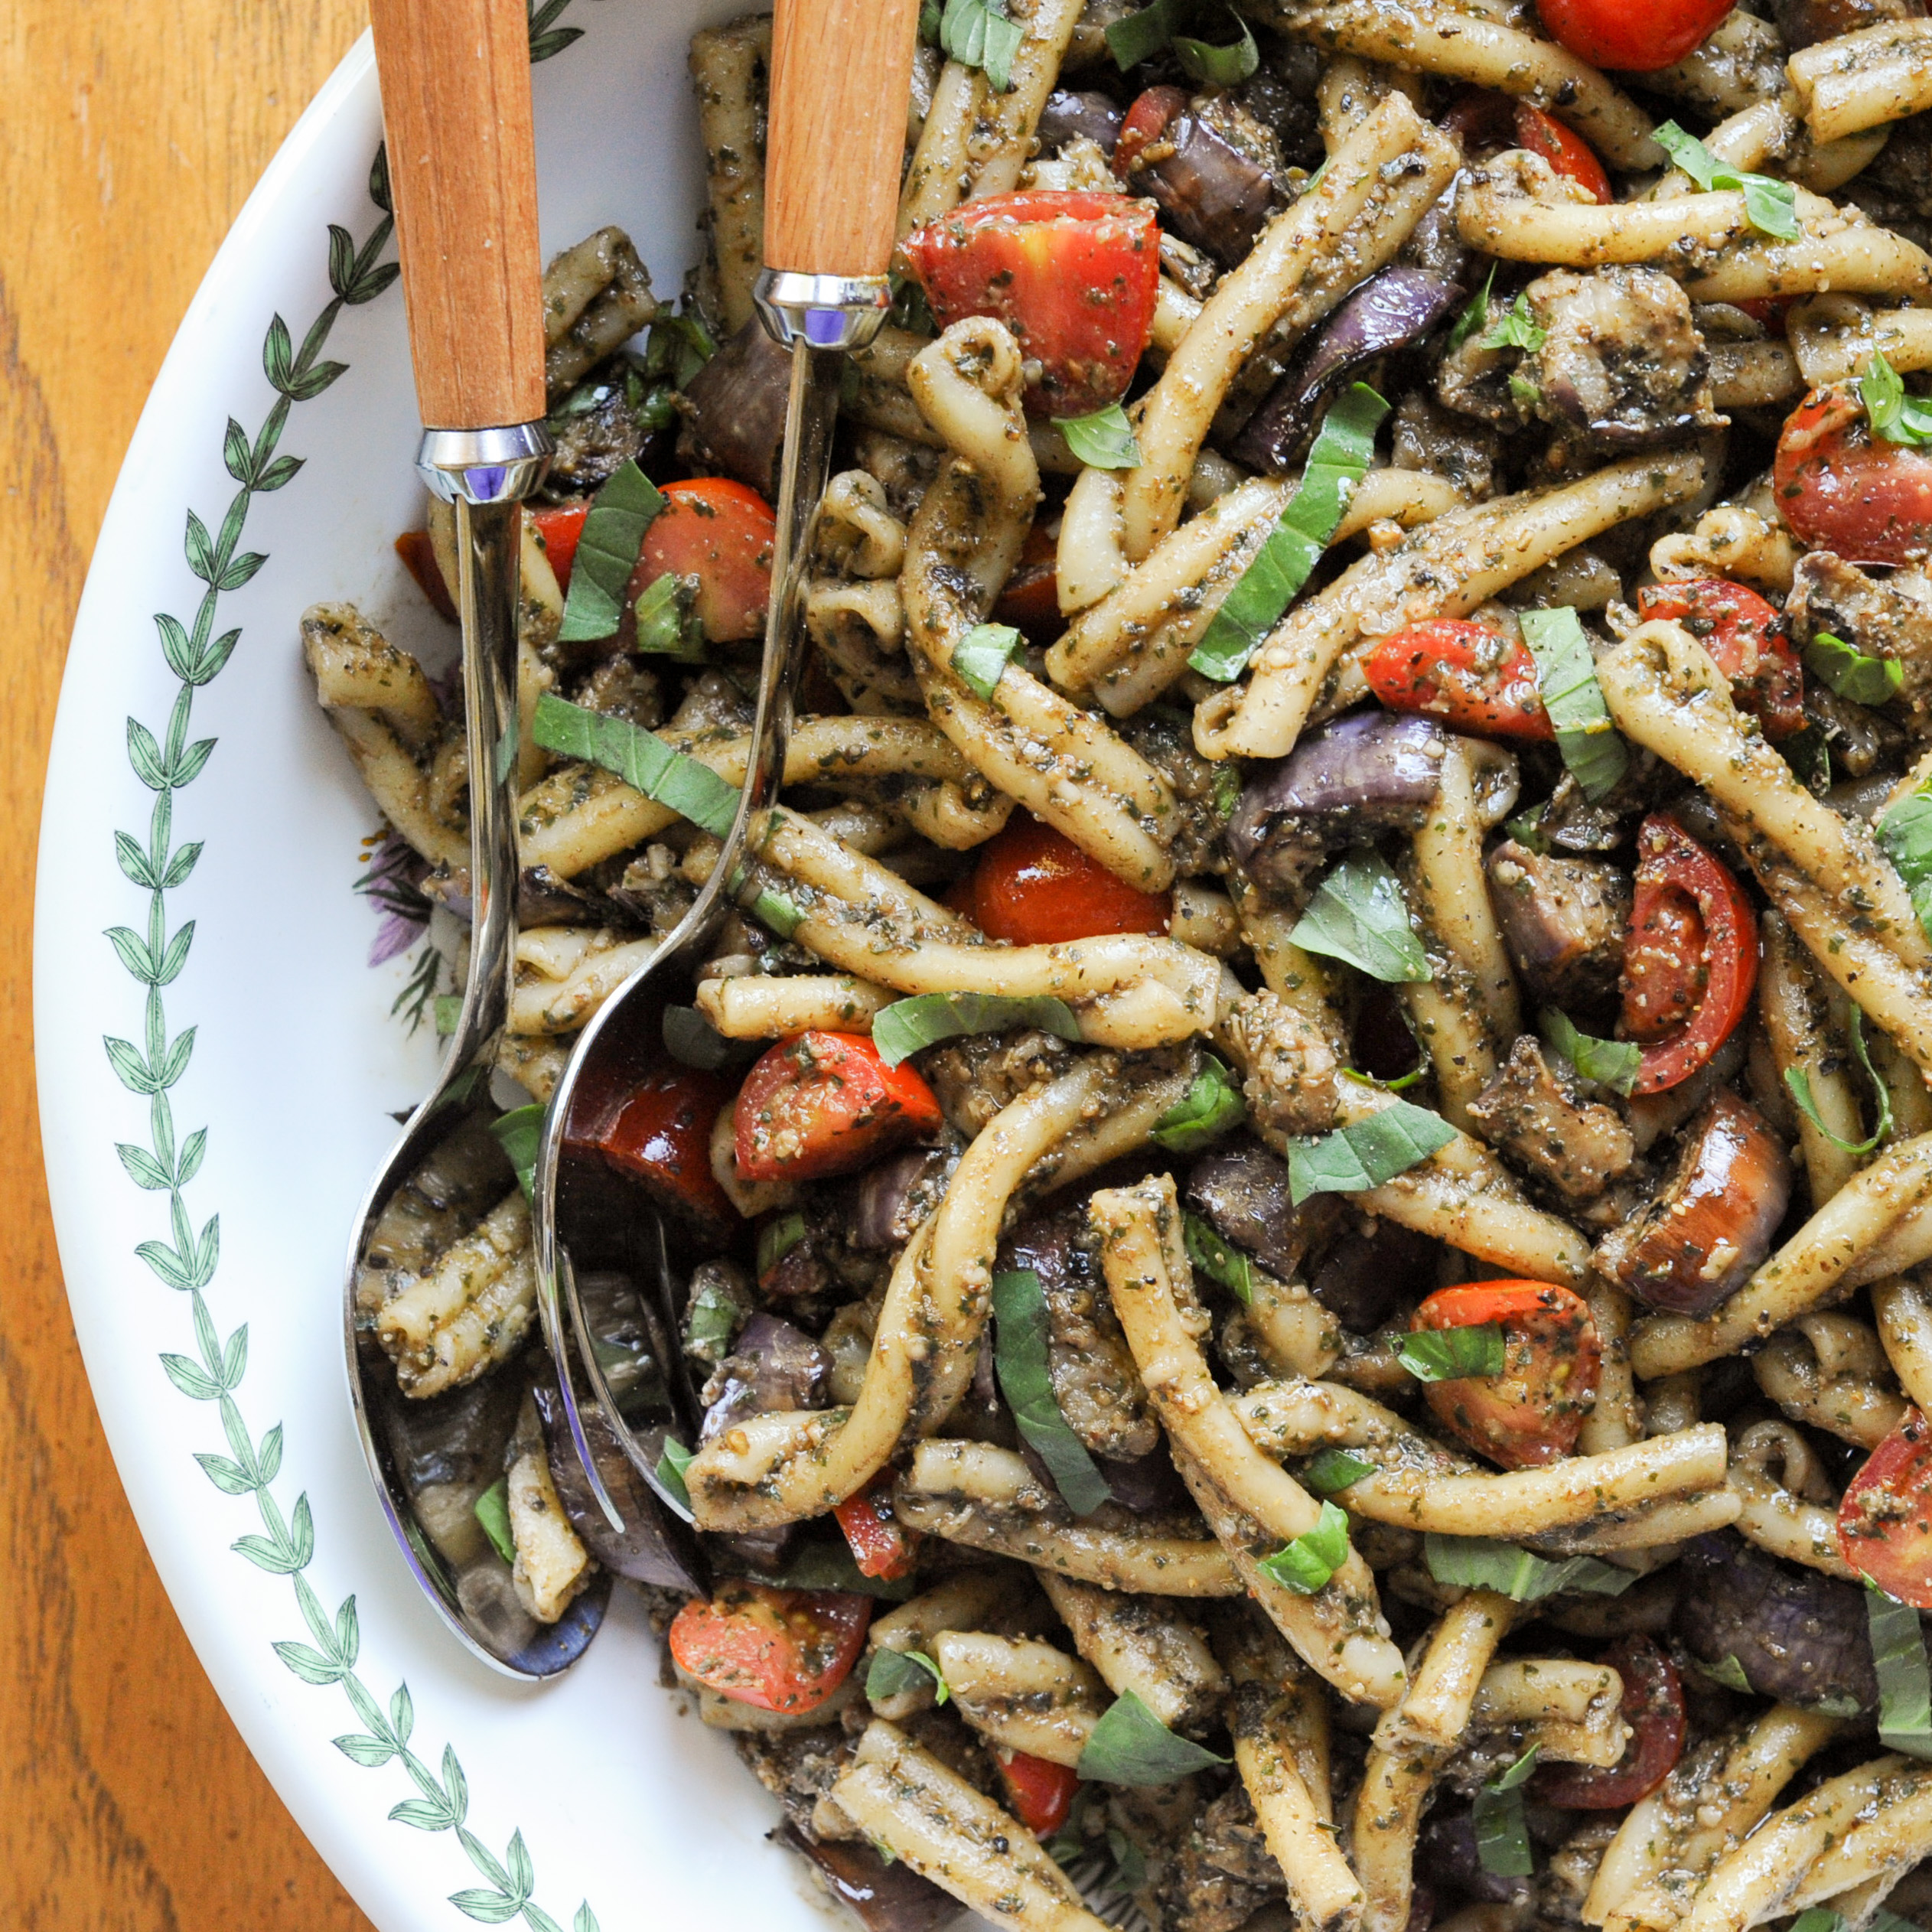 Pesto Pasta With Grilled Eggplant and Cherry Tomatoes | amodestfeast.com | @amodestfeast